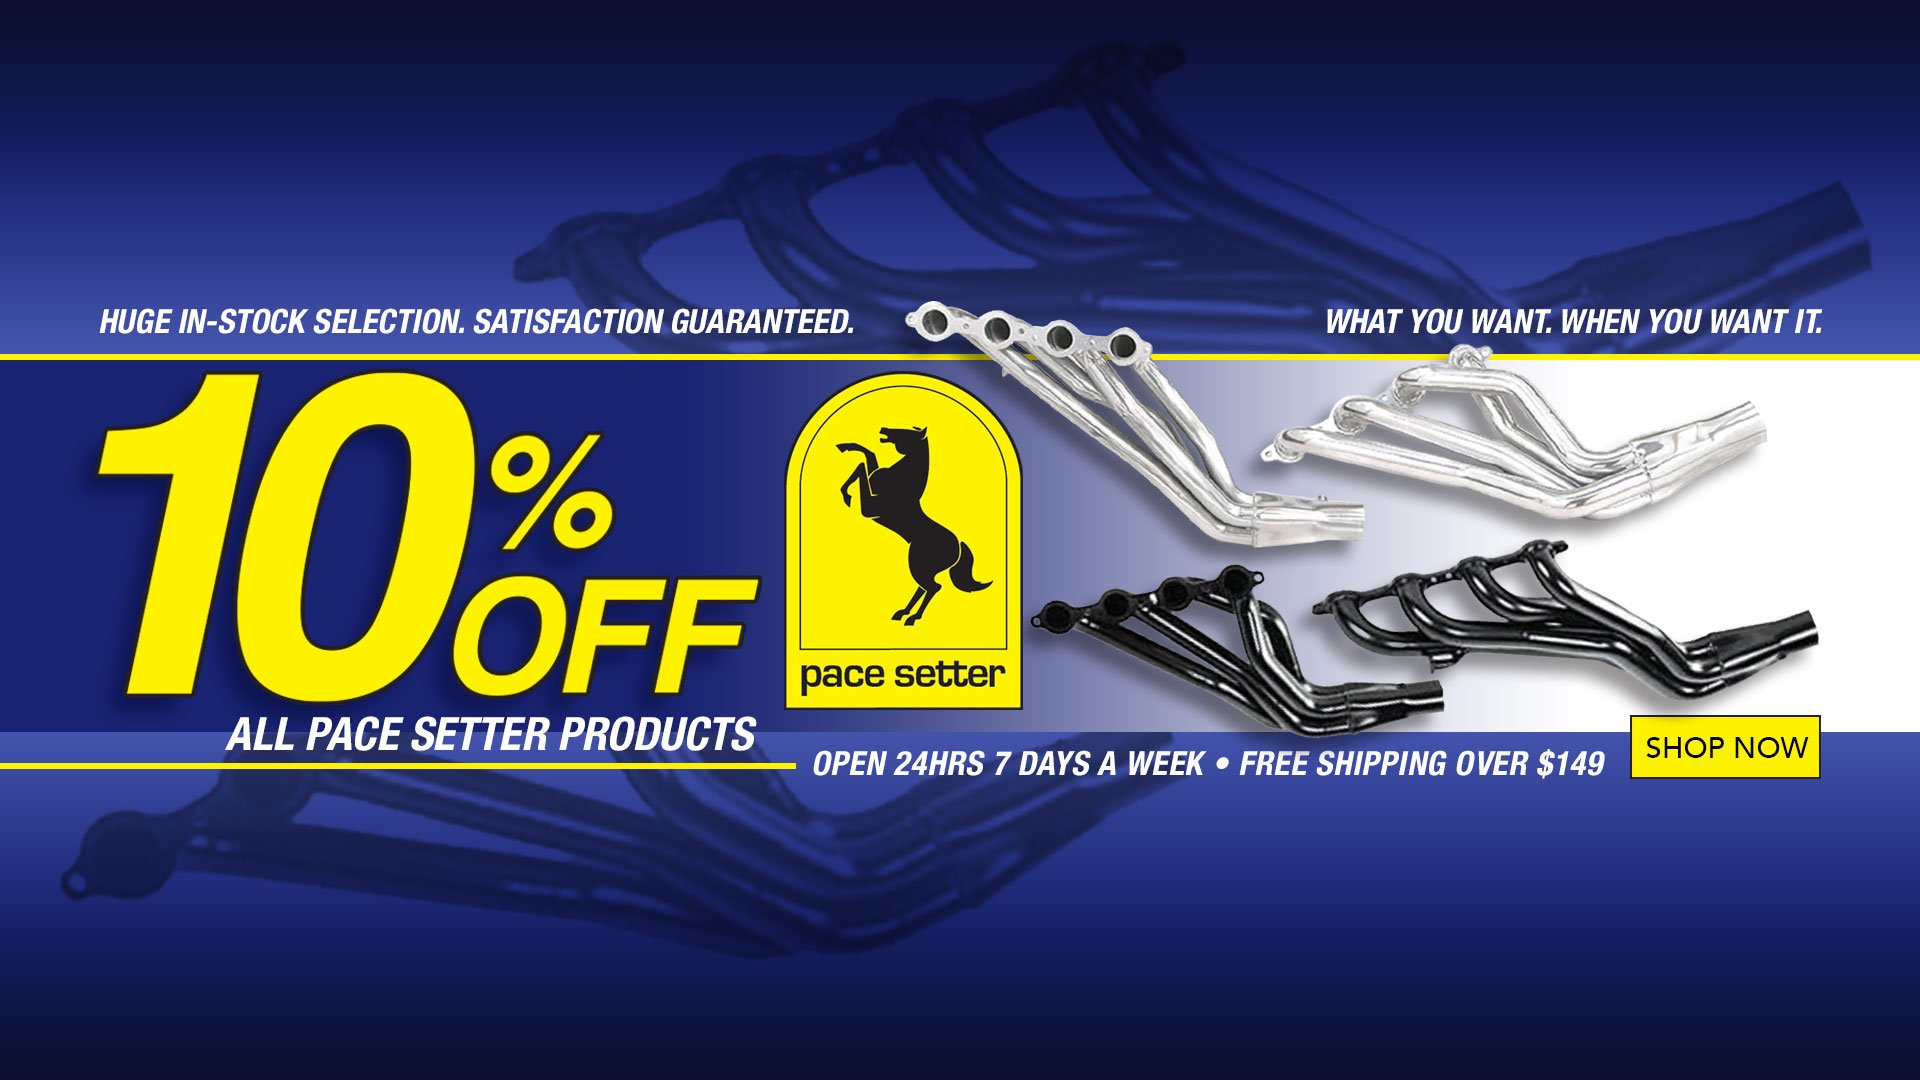 Save 10% on ALL Pace Setter Products